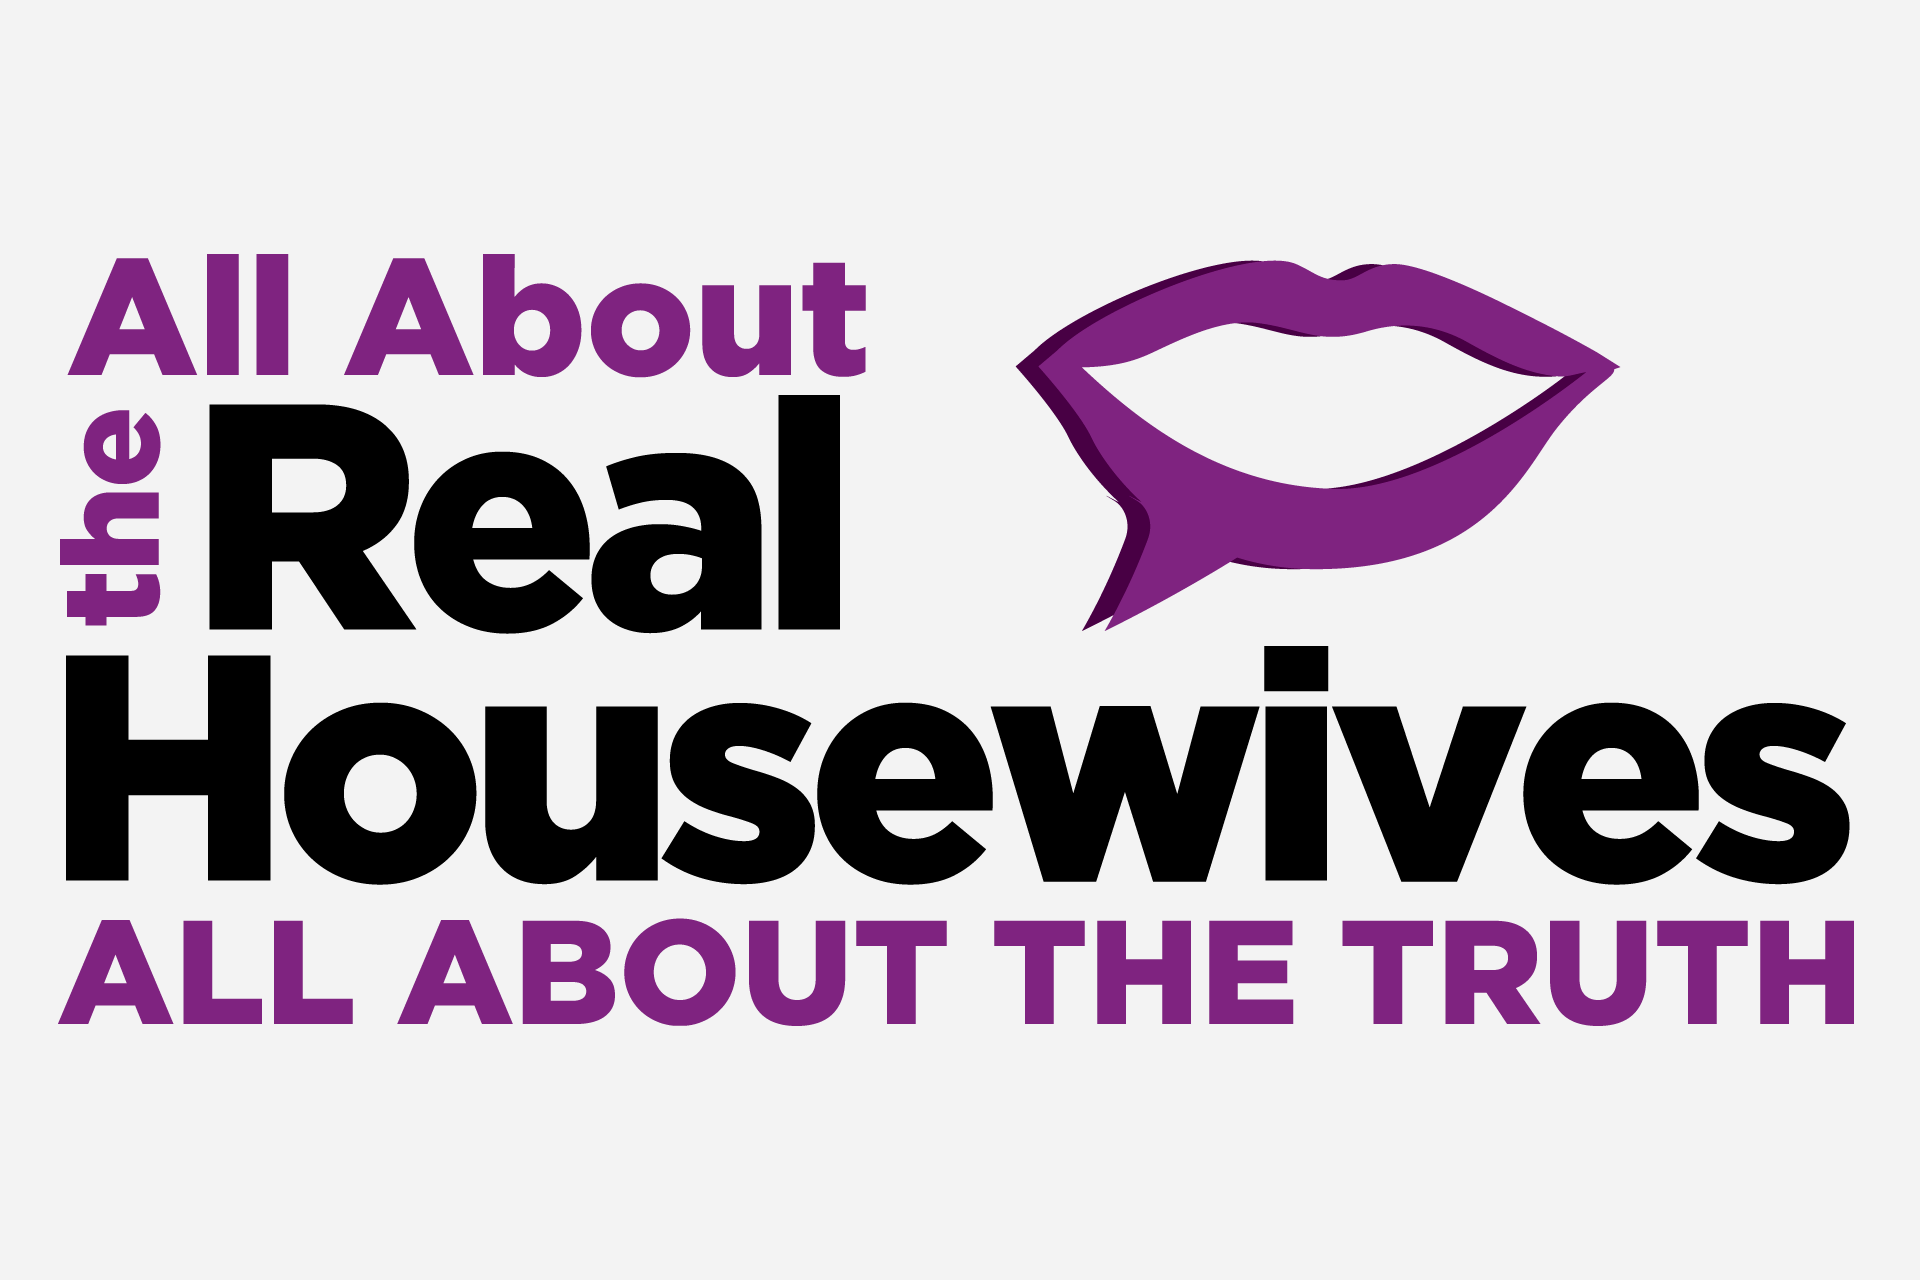 Brandi Glanville Challenges The Other Housewives To A Lie Detector Test At The Reunion!